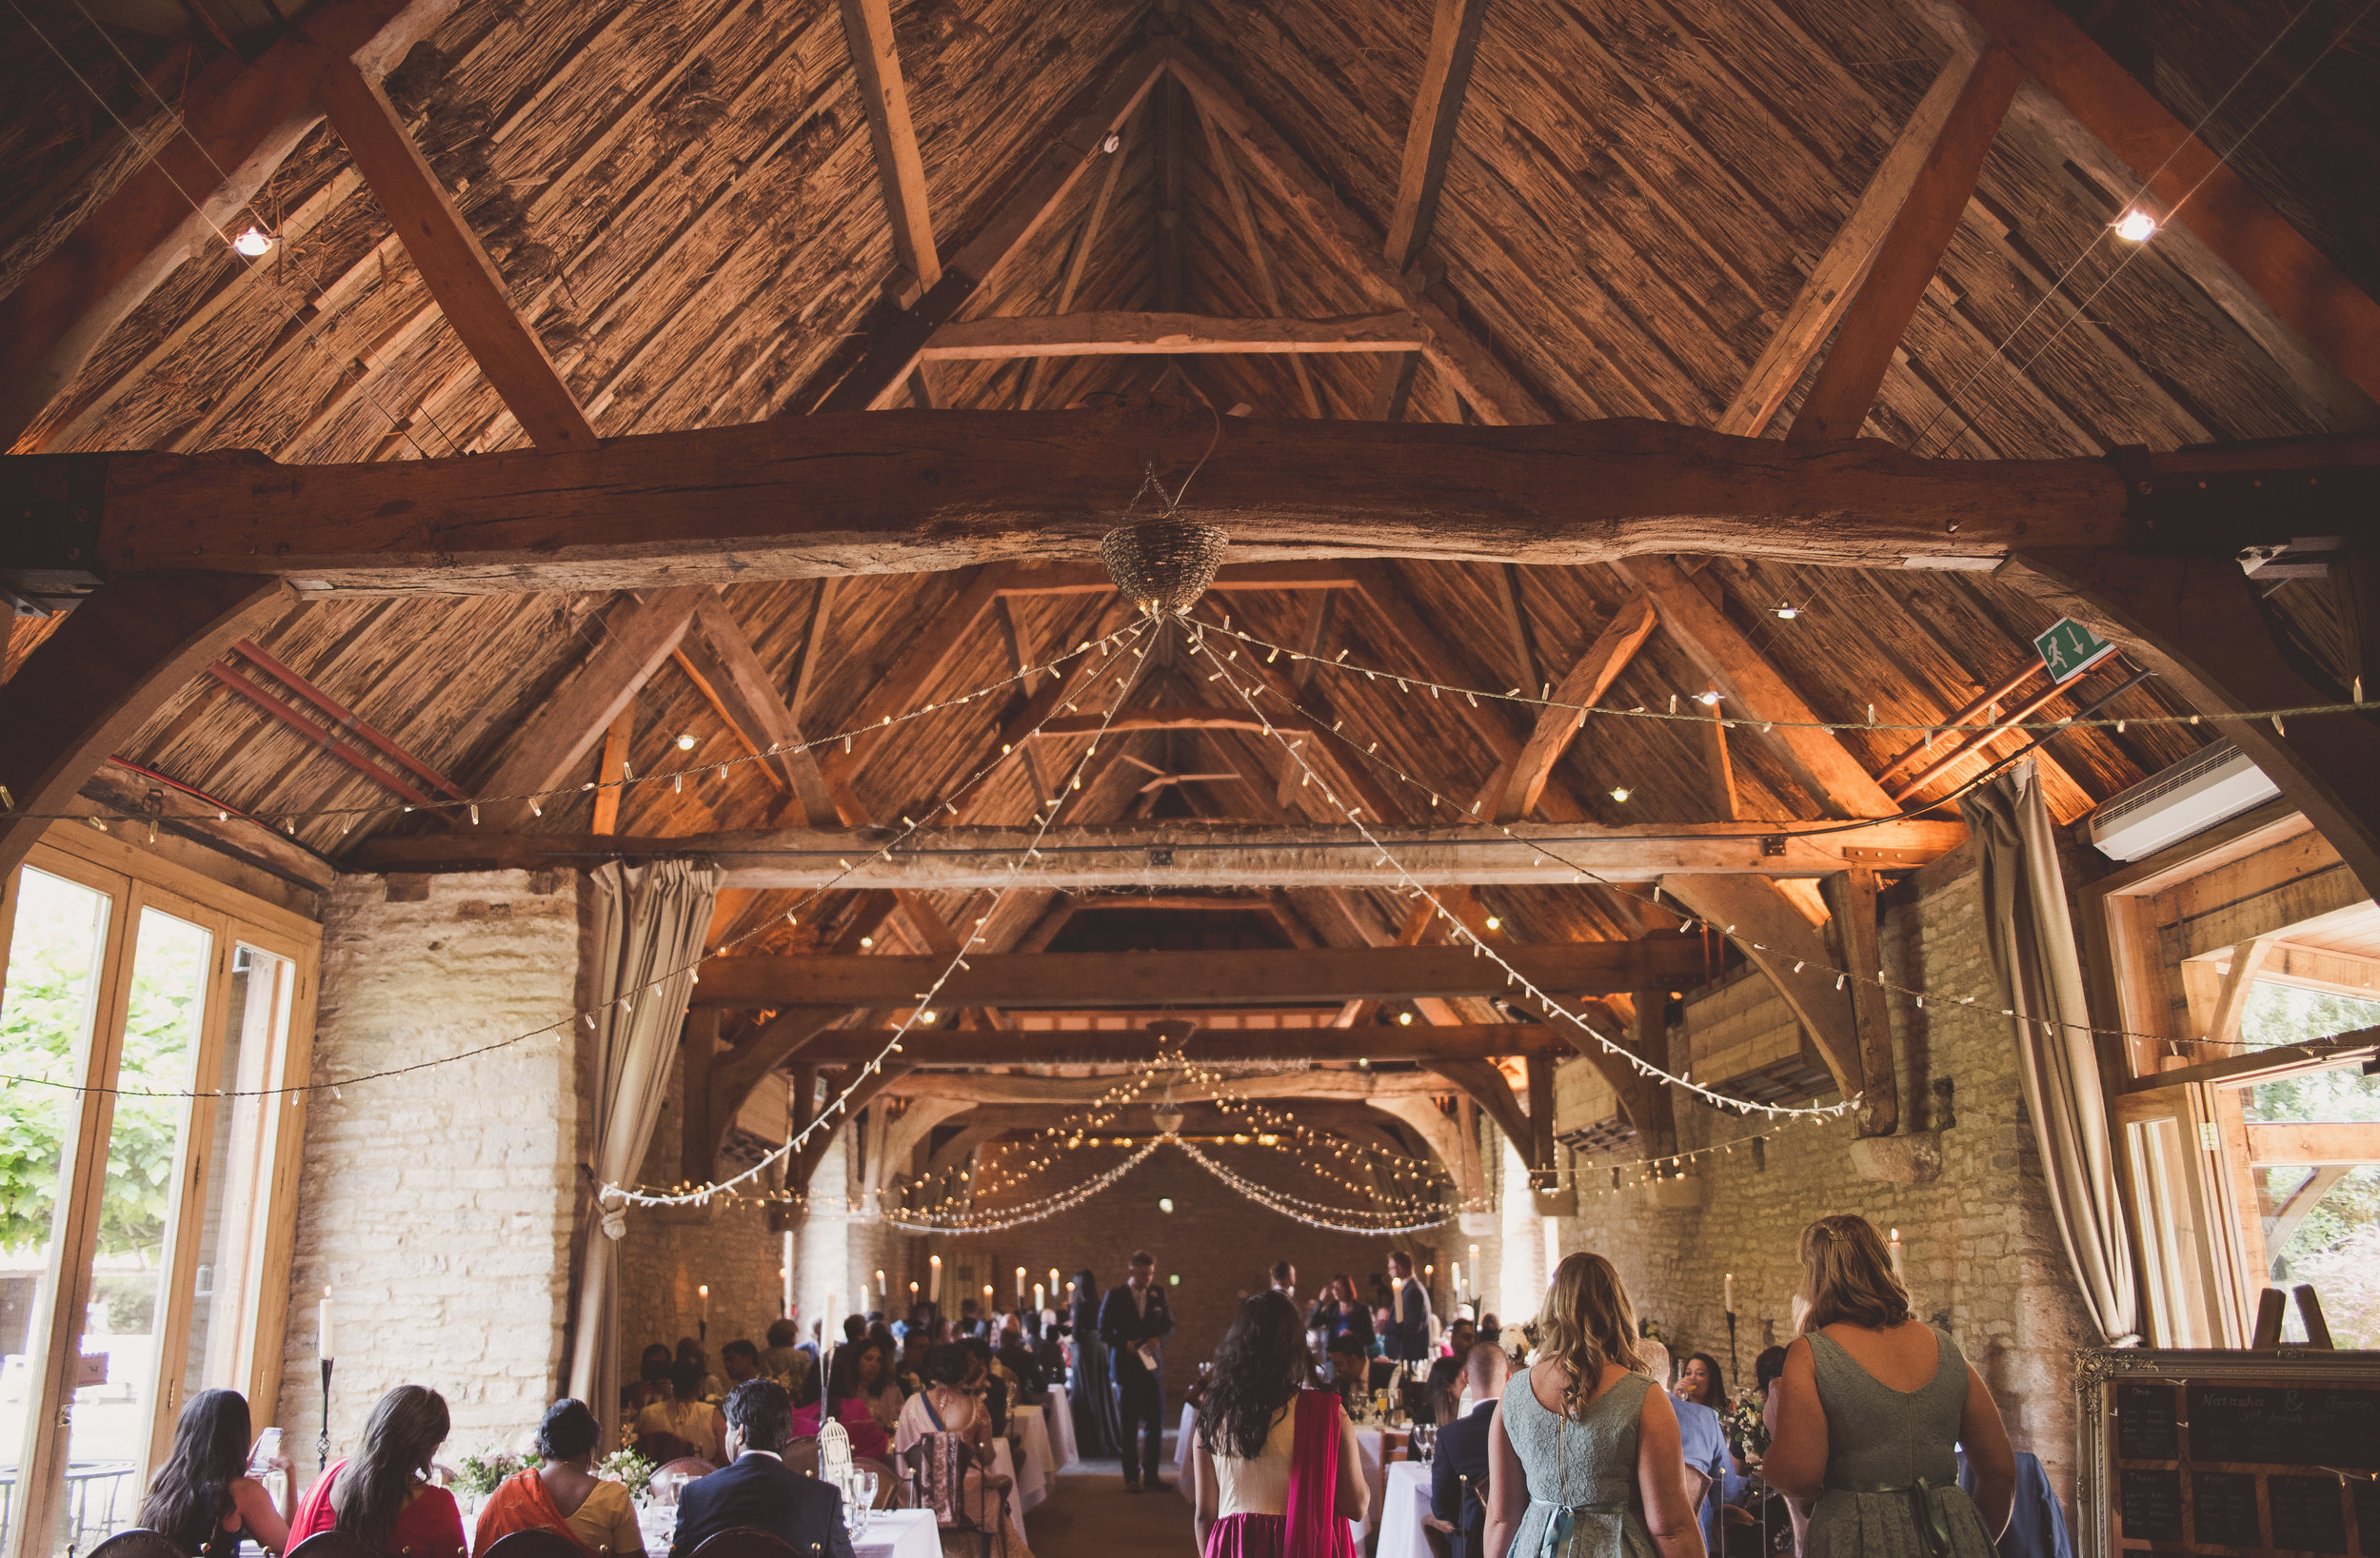 The Tythe Barn set up for a wedding